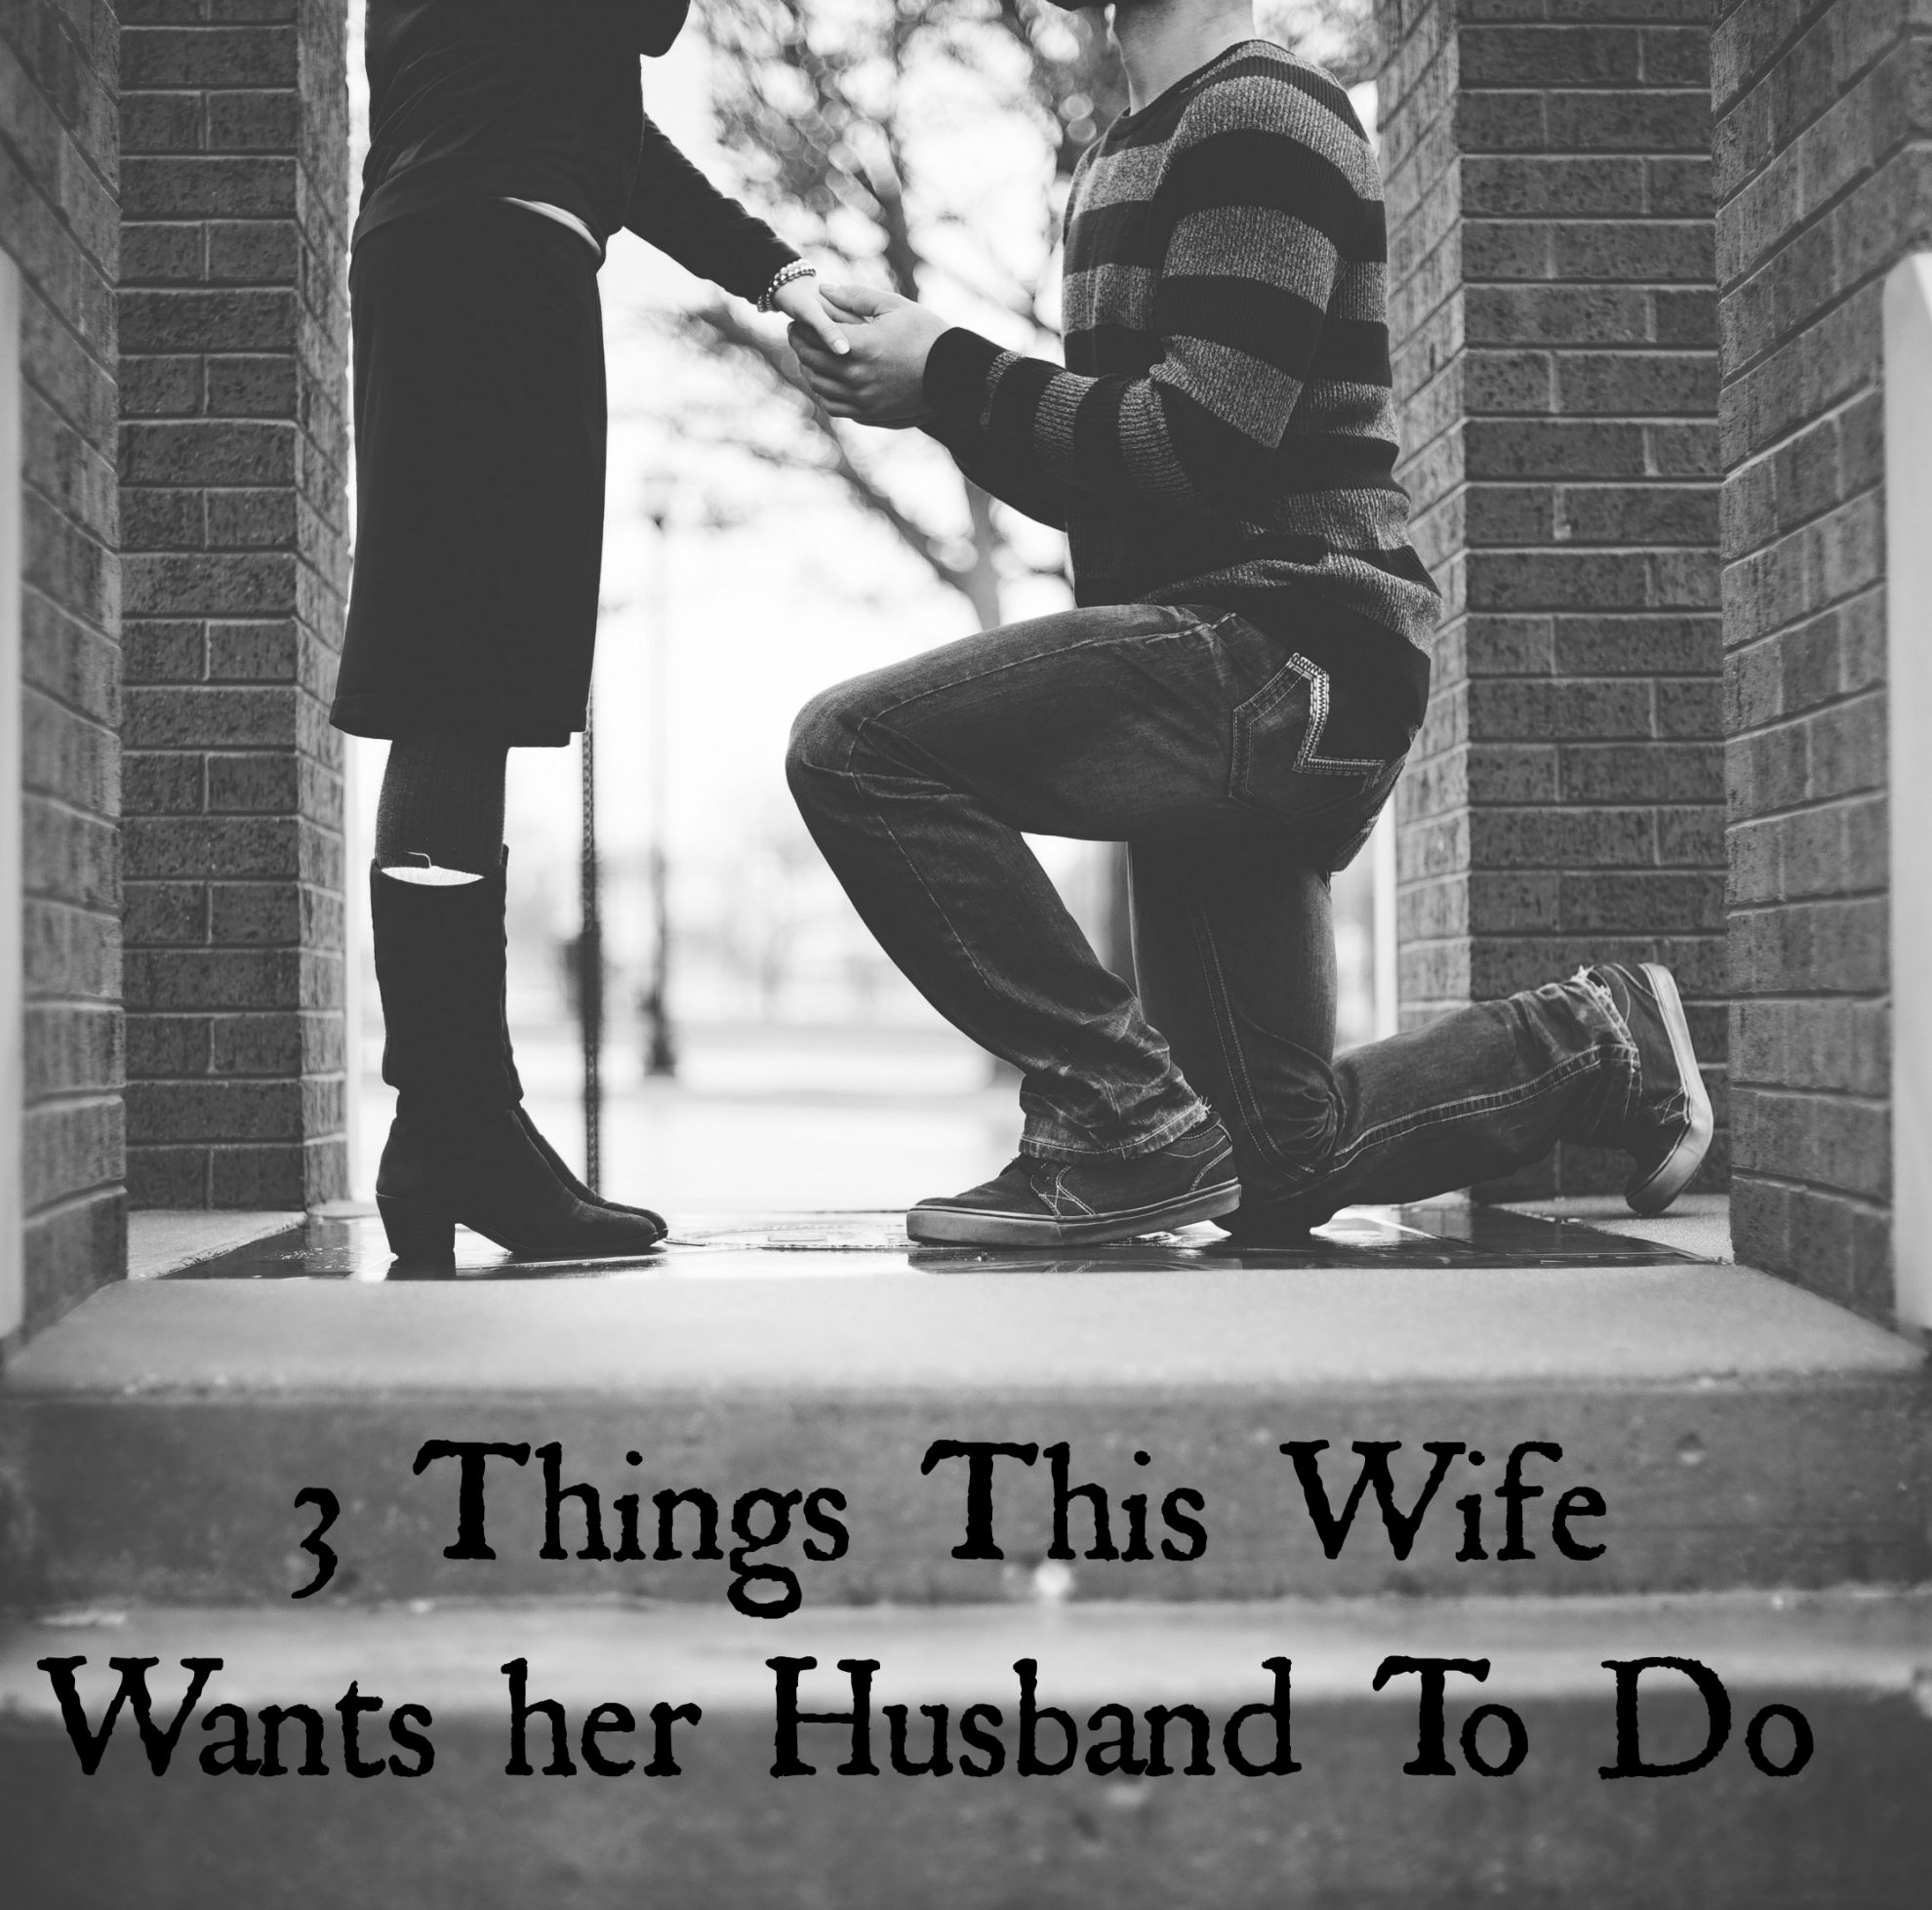 3 Things This Wife Wants her Husband To Do